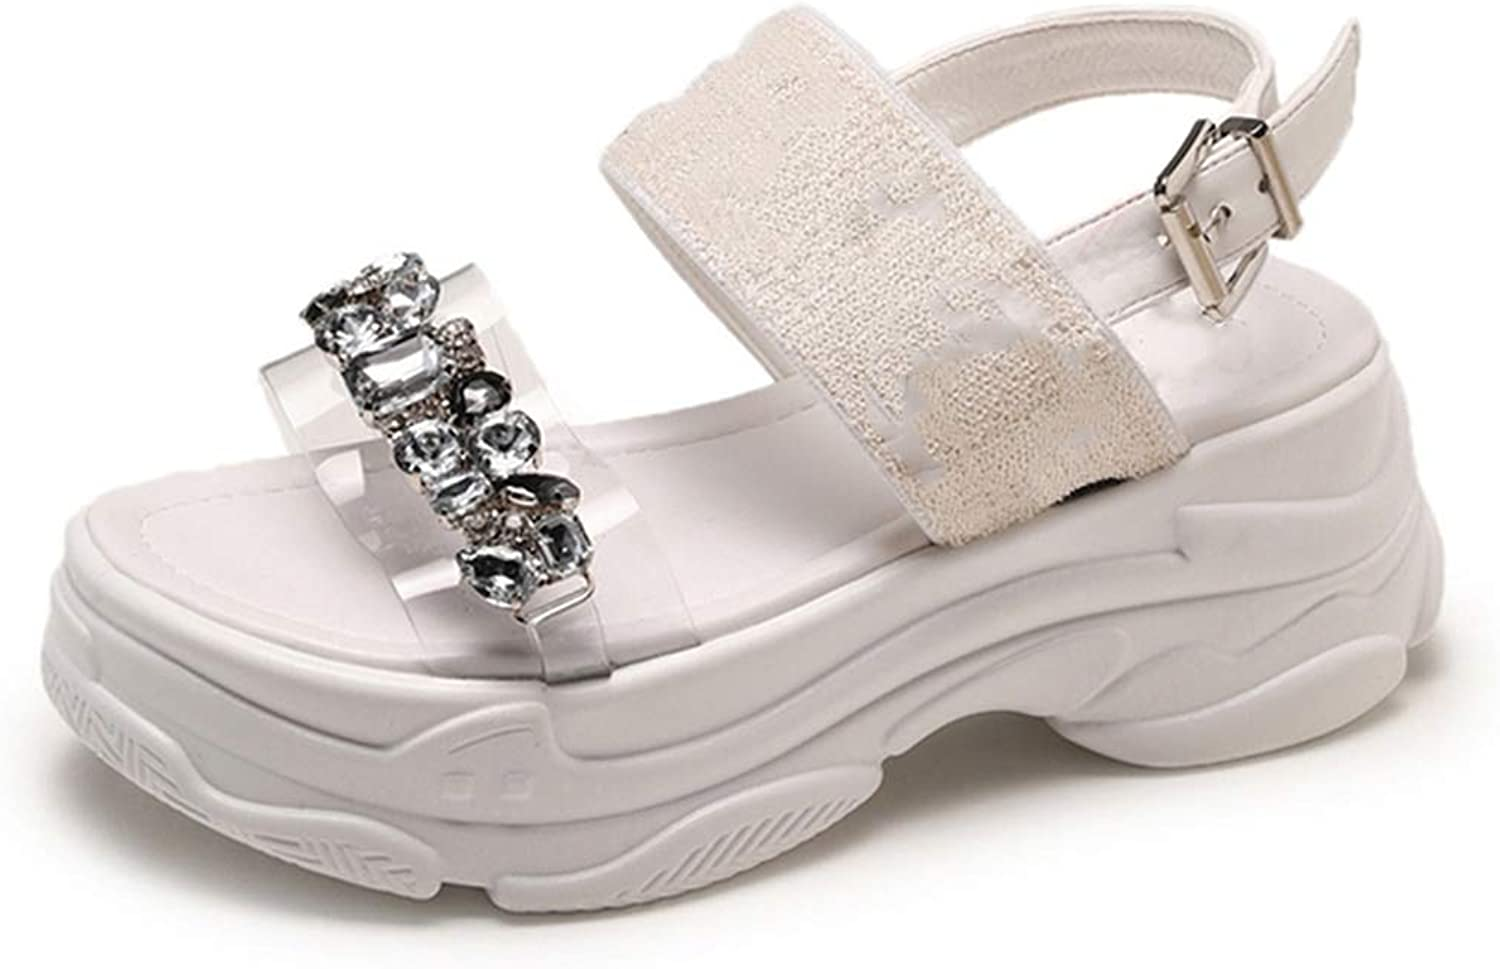 Summer shoes Women Open-Toed Leisure Sandals Comfortable Platform shoes Outdoor Outdoor Work shoes Size35-39